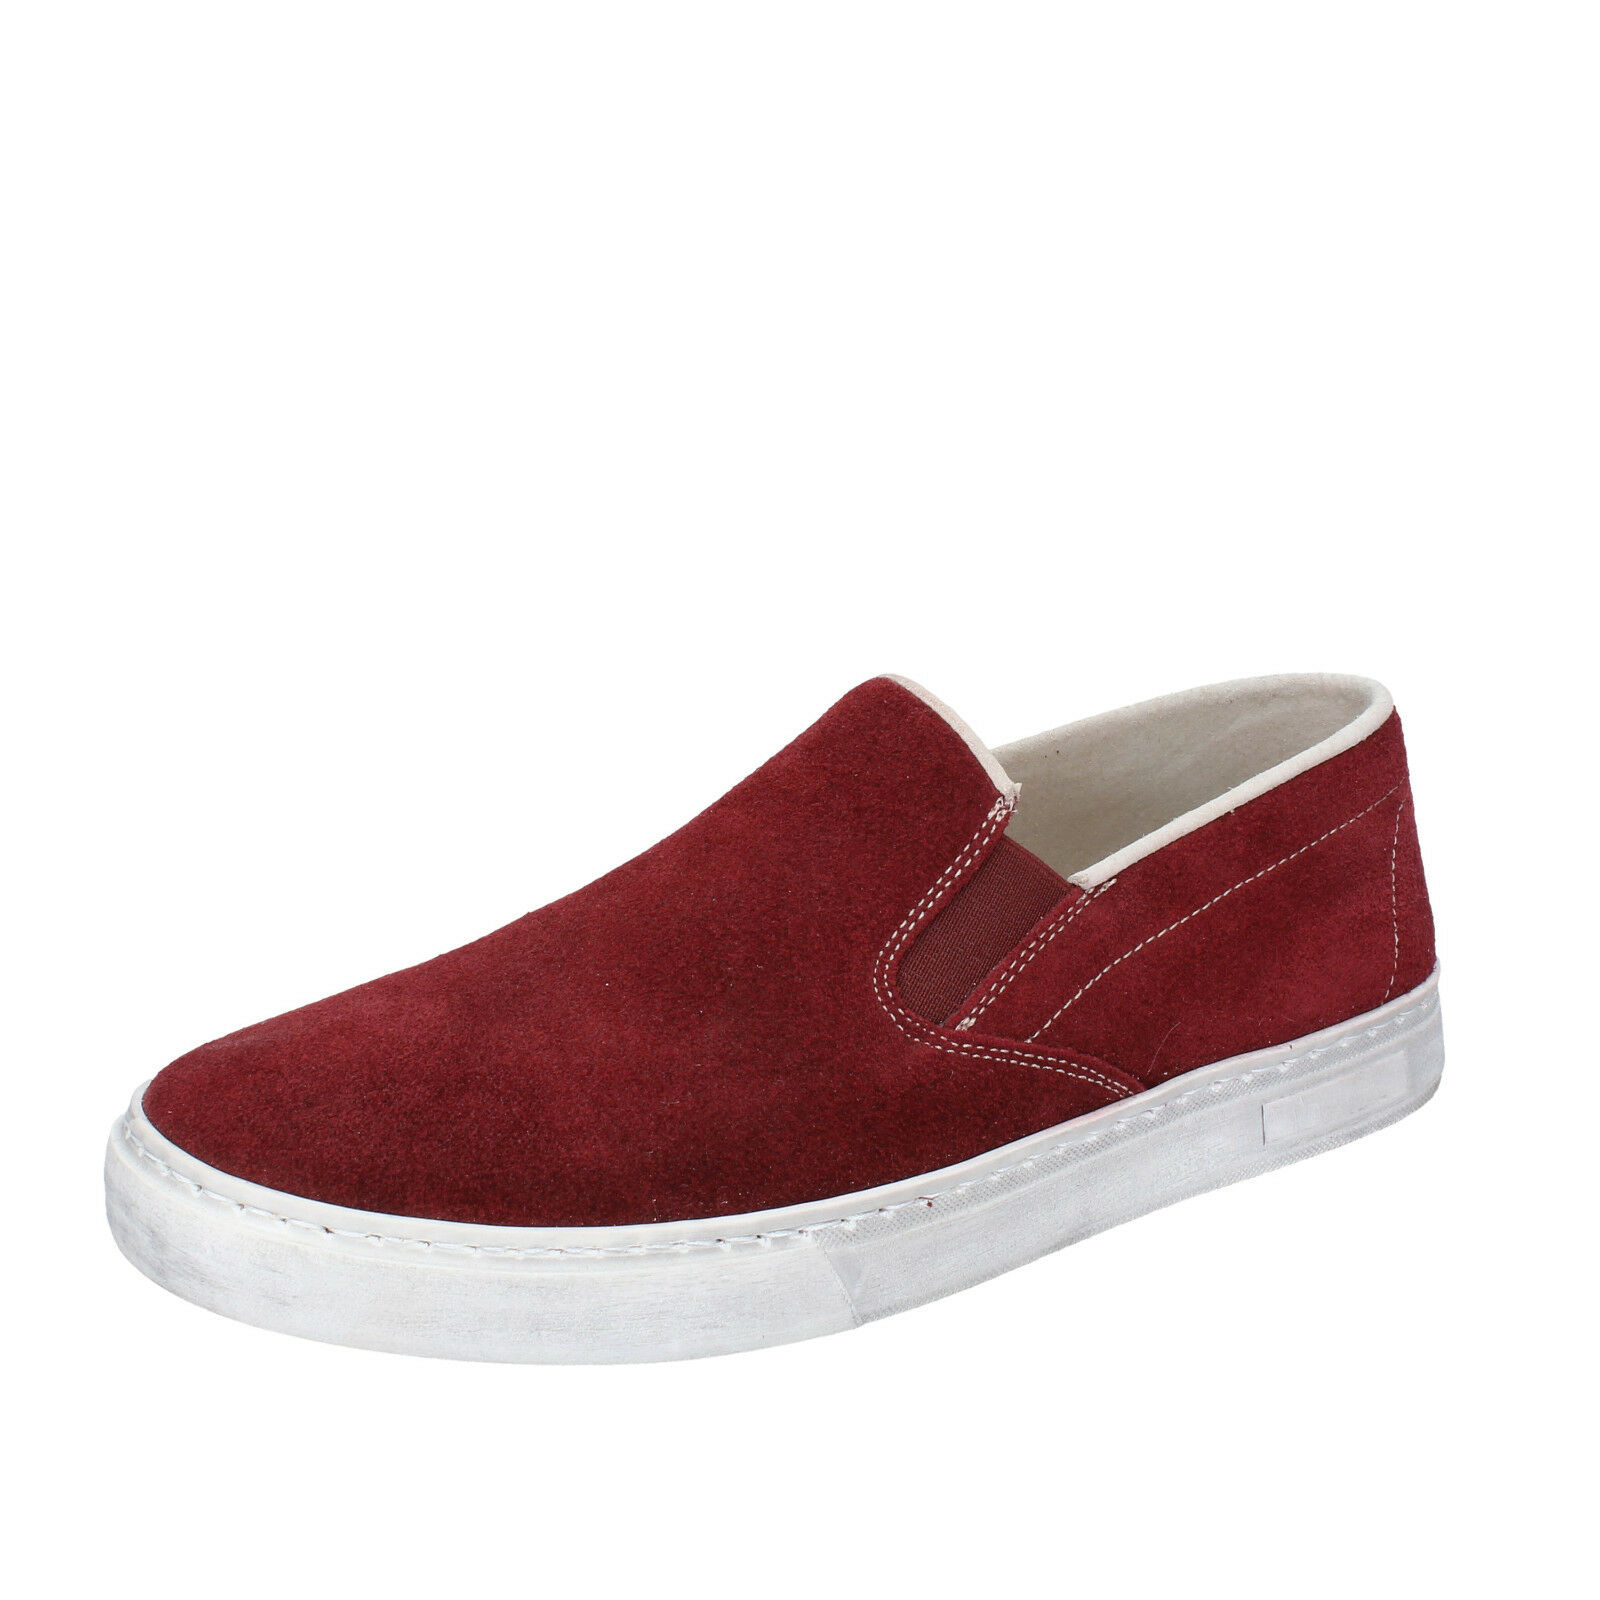 Herren schuhe NYON BY wildleder CORAF 40 slip on burgund wildleder BY BZ901-C 0acc88